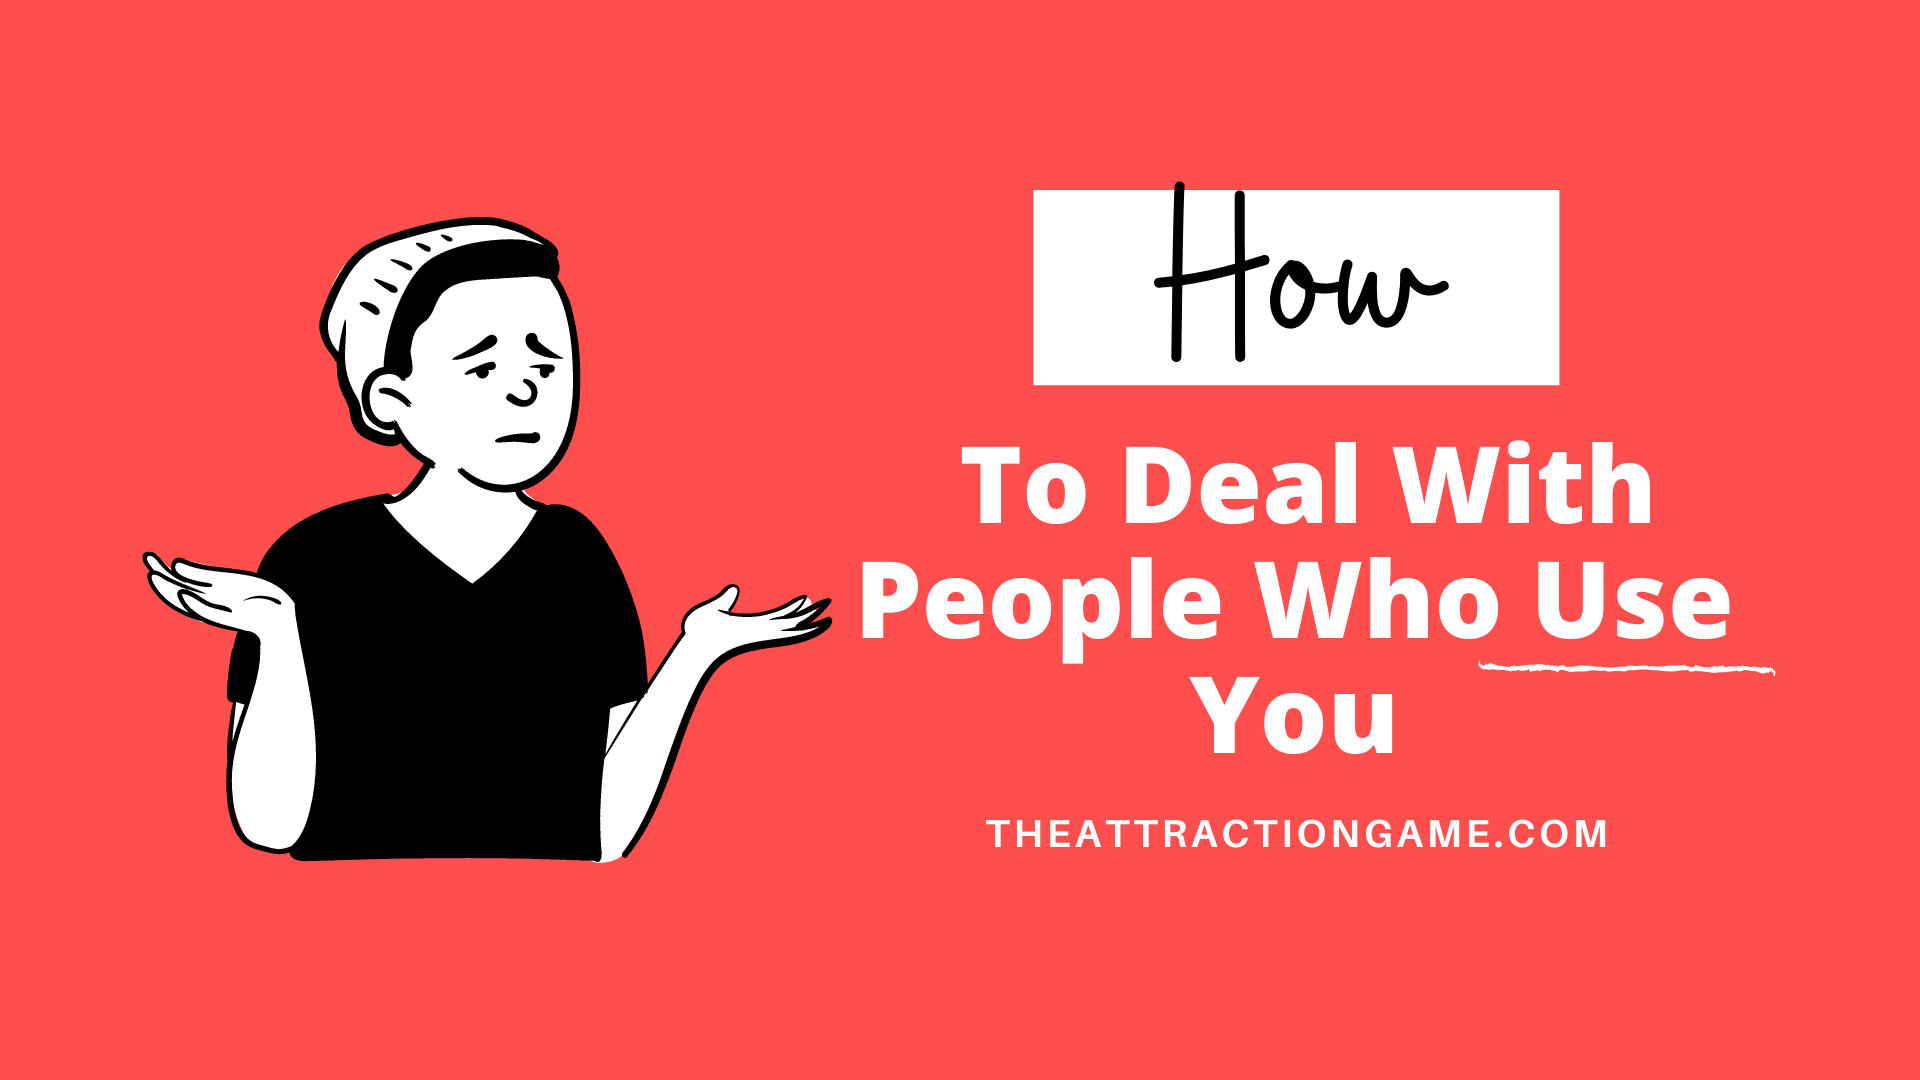 people who use you, dealing with people who use you, how to stop people who use you, how to prevent people from using you, dealing with people who use you, how to handle someone who is using you